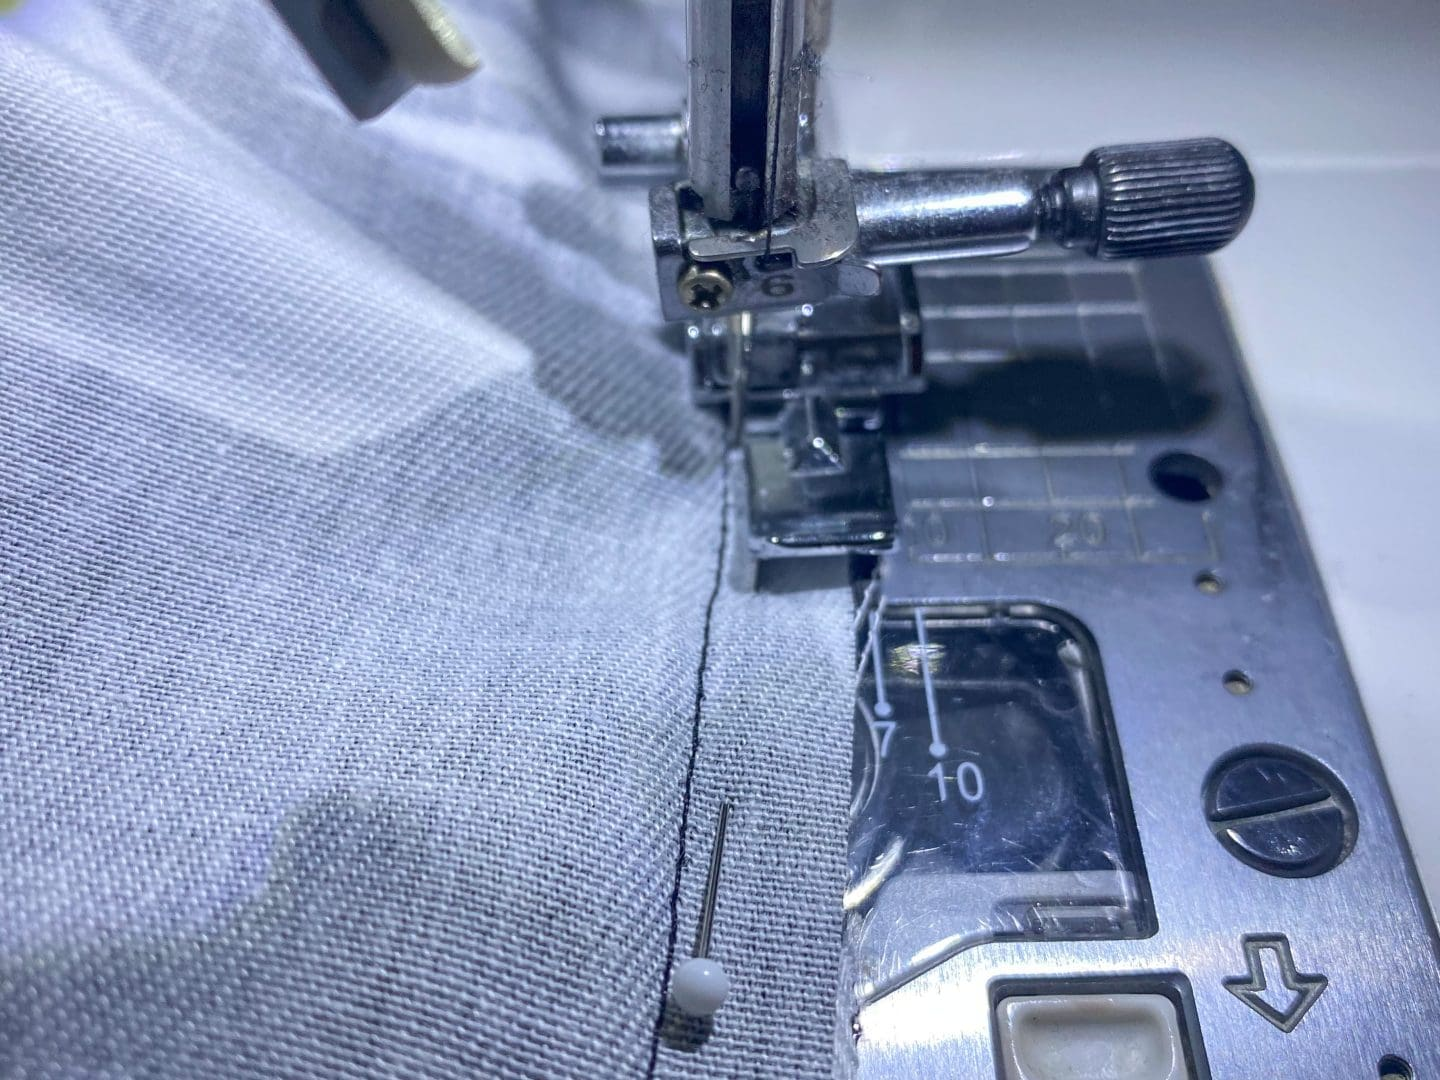 Image of sewing machine with zipper foot to sew piping